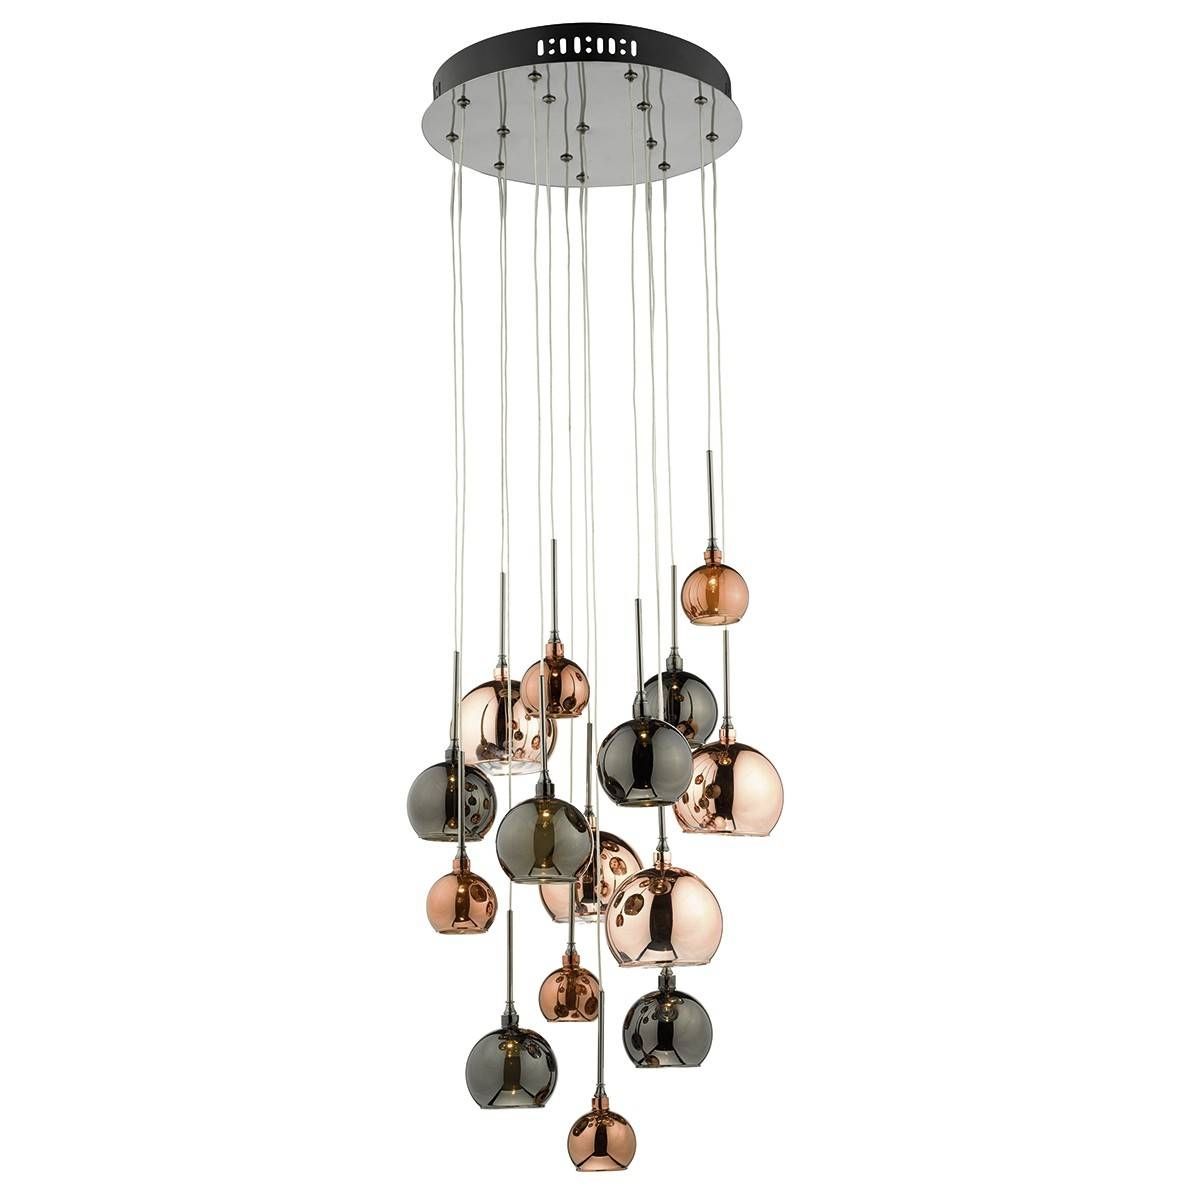 15lt G4 Spiral With Copper, Dark Copper And Bronze Glass15 Light Pertaining To Pendant Lights For Ceiling Plate (View 7 of 15)